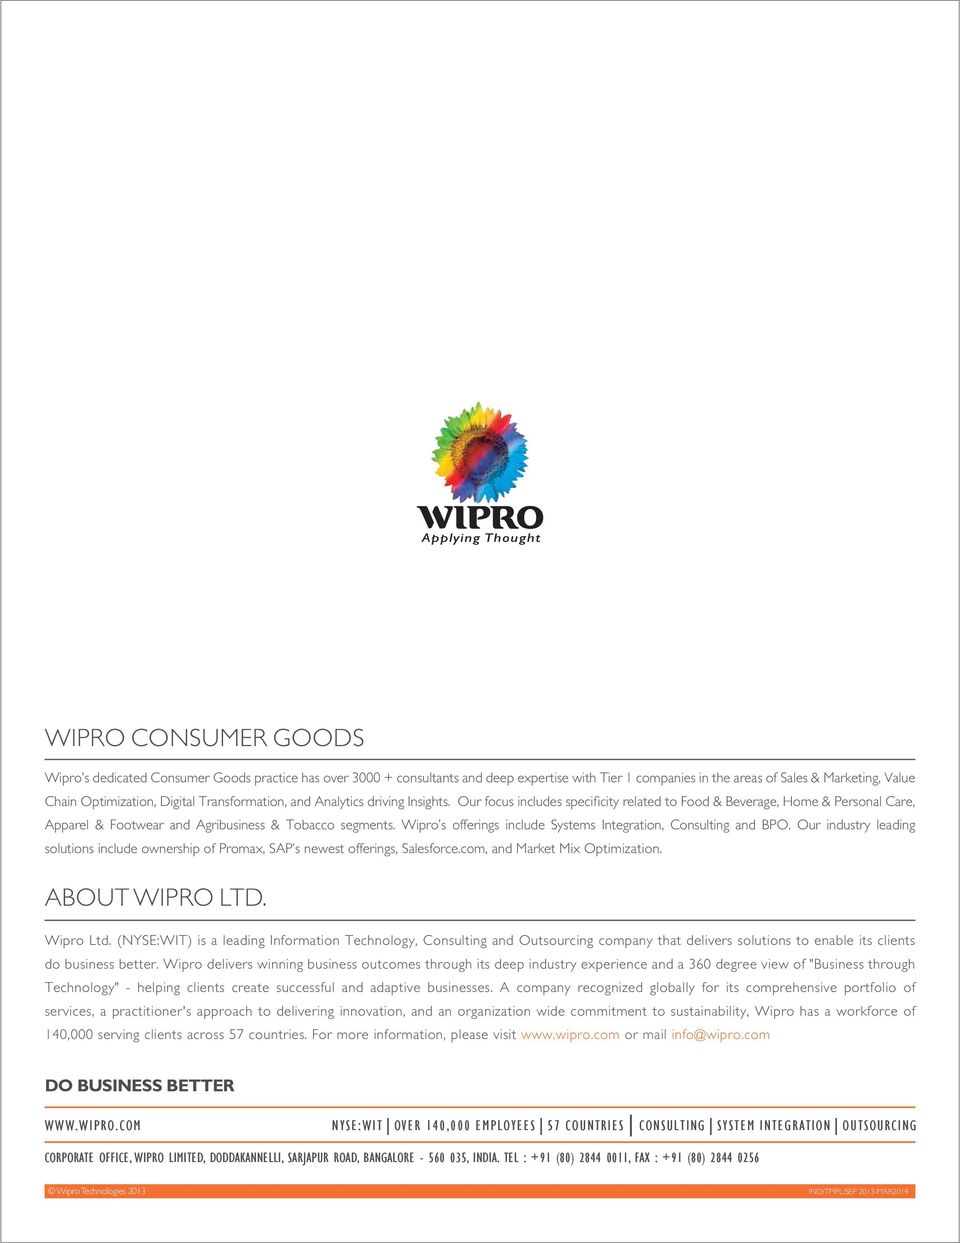 Wipro s offerings include Systems Integration, Consulting and BPO. Our industry leading solutions include ownership of Promax, SAP s newest offerings, Salesforce.com, and Market Mix Optimization.